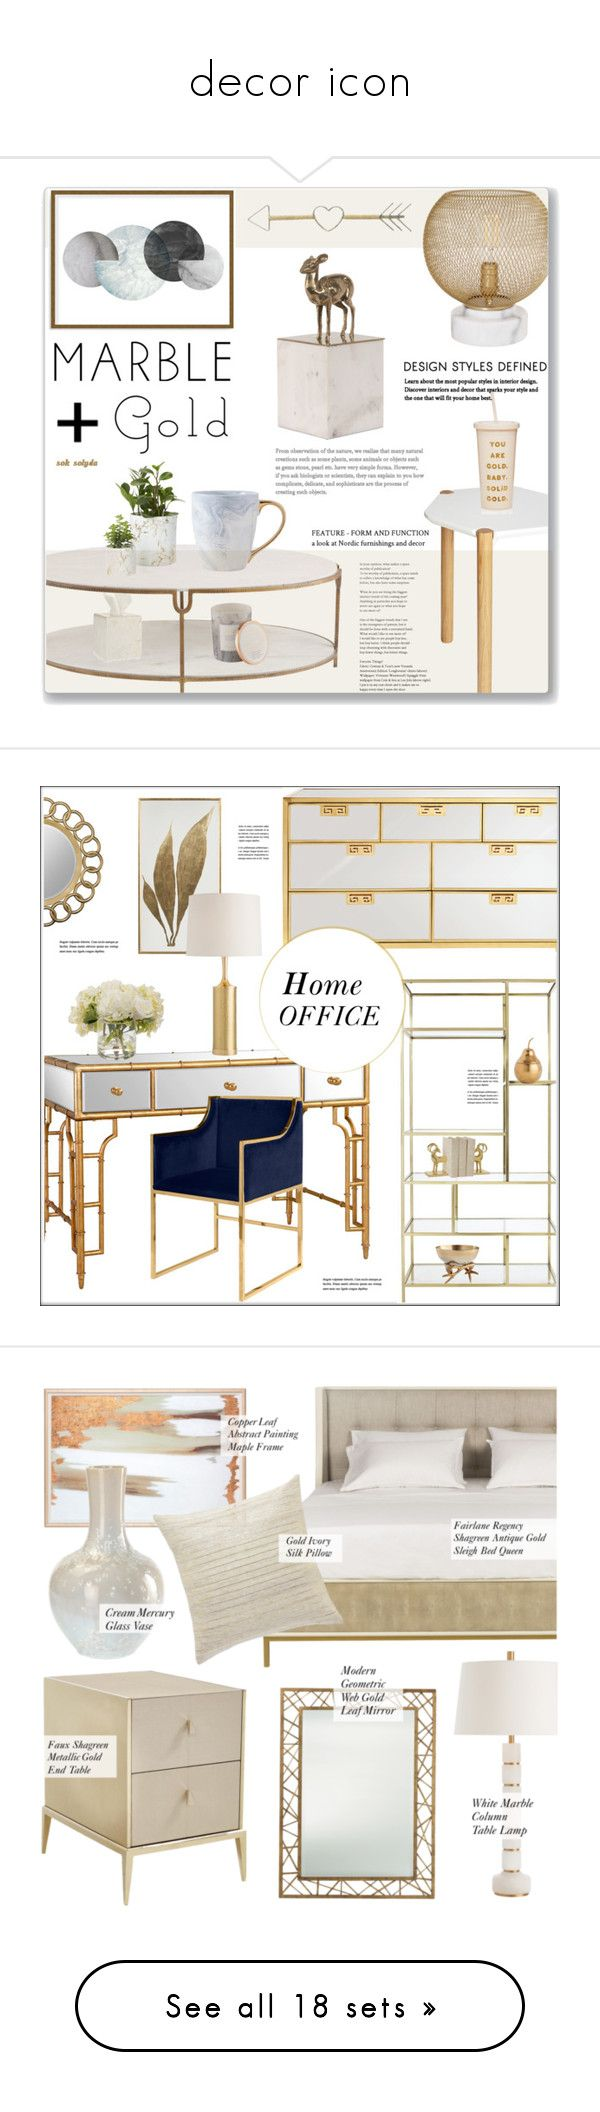 """""""decor icon"""" by arwaroro48 on Polyvore featuring interior, interiors, interior design, home, home decor, interior decorating, Umbra, cupcakes and cashmere, ban.do and Global Views"""